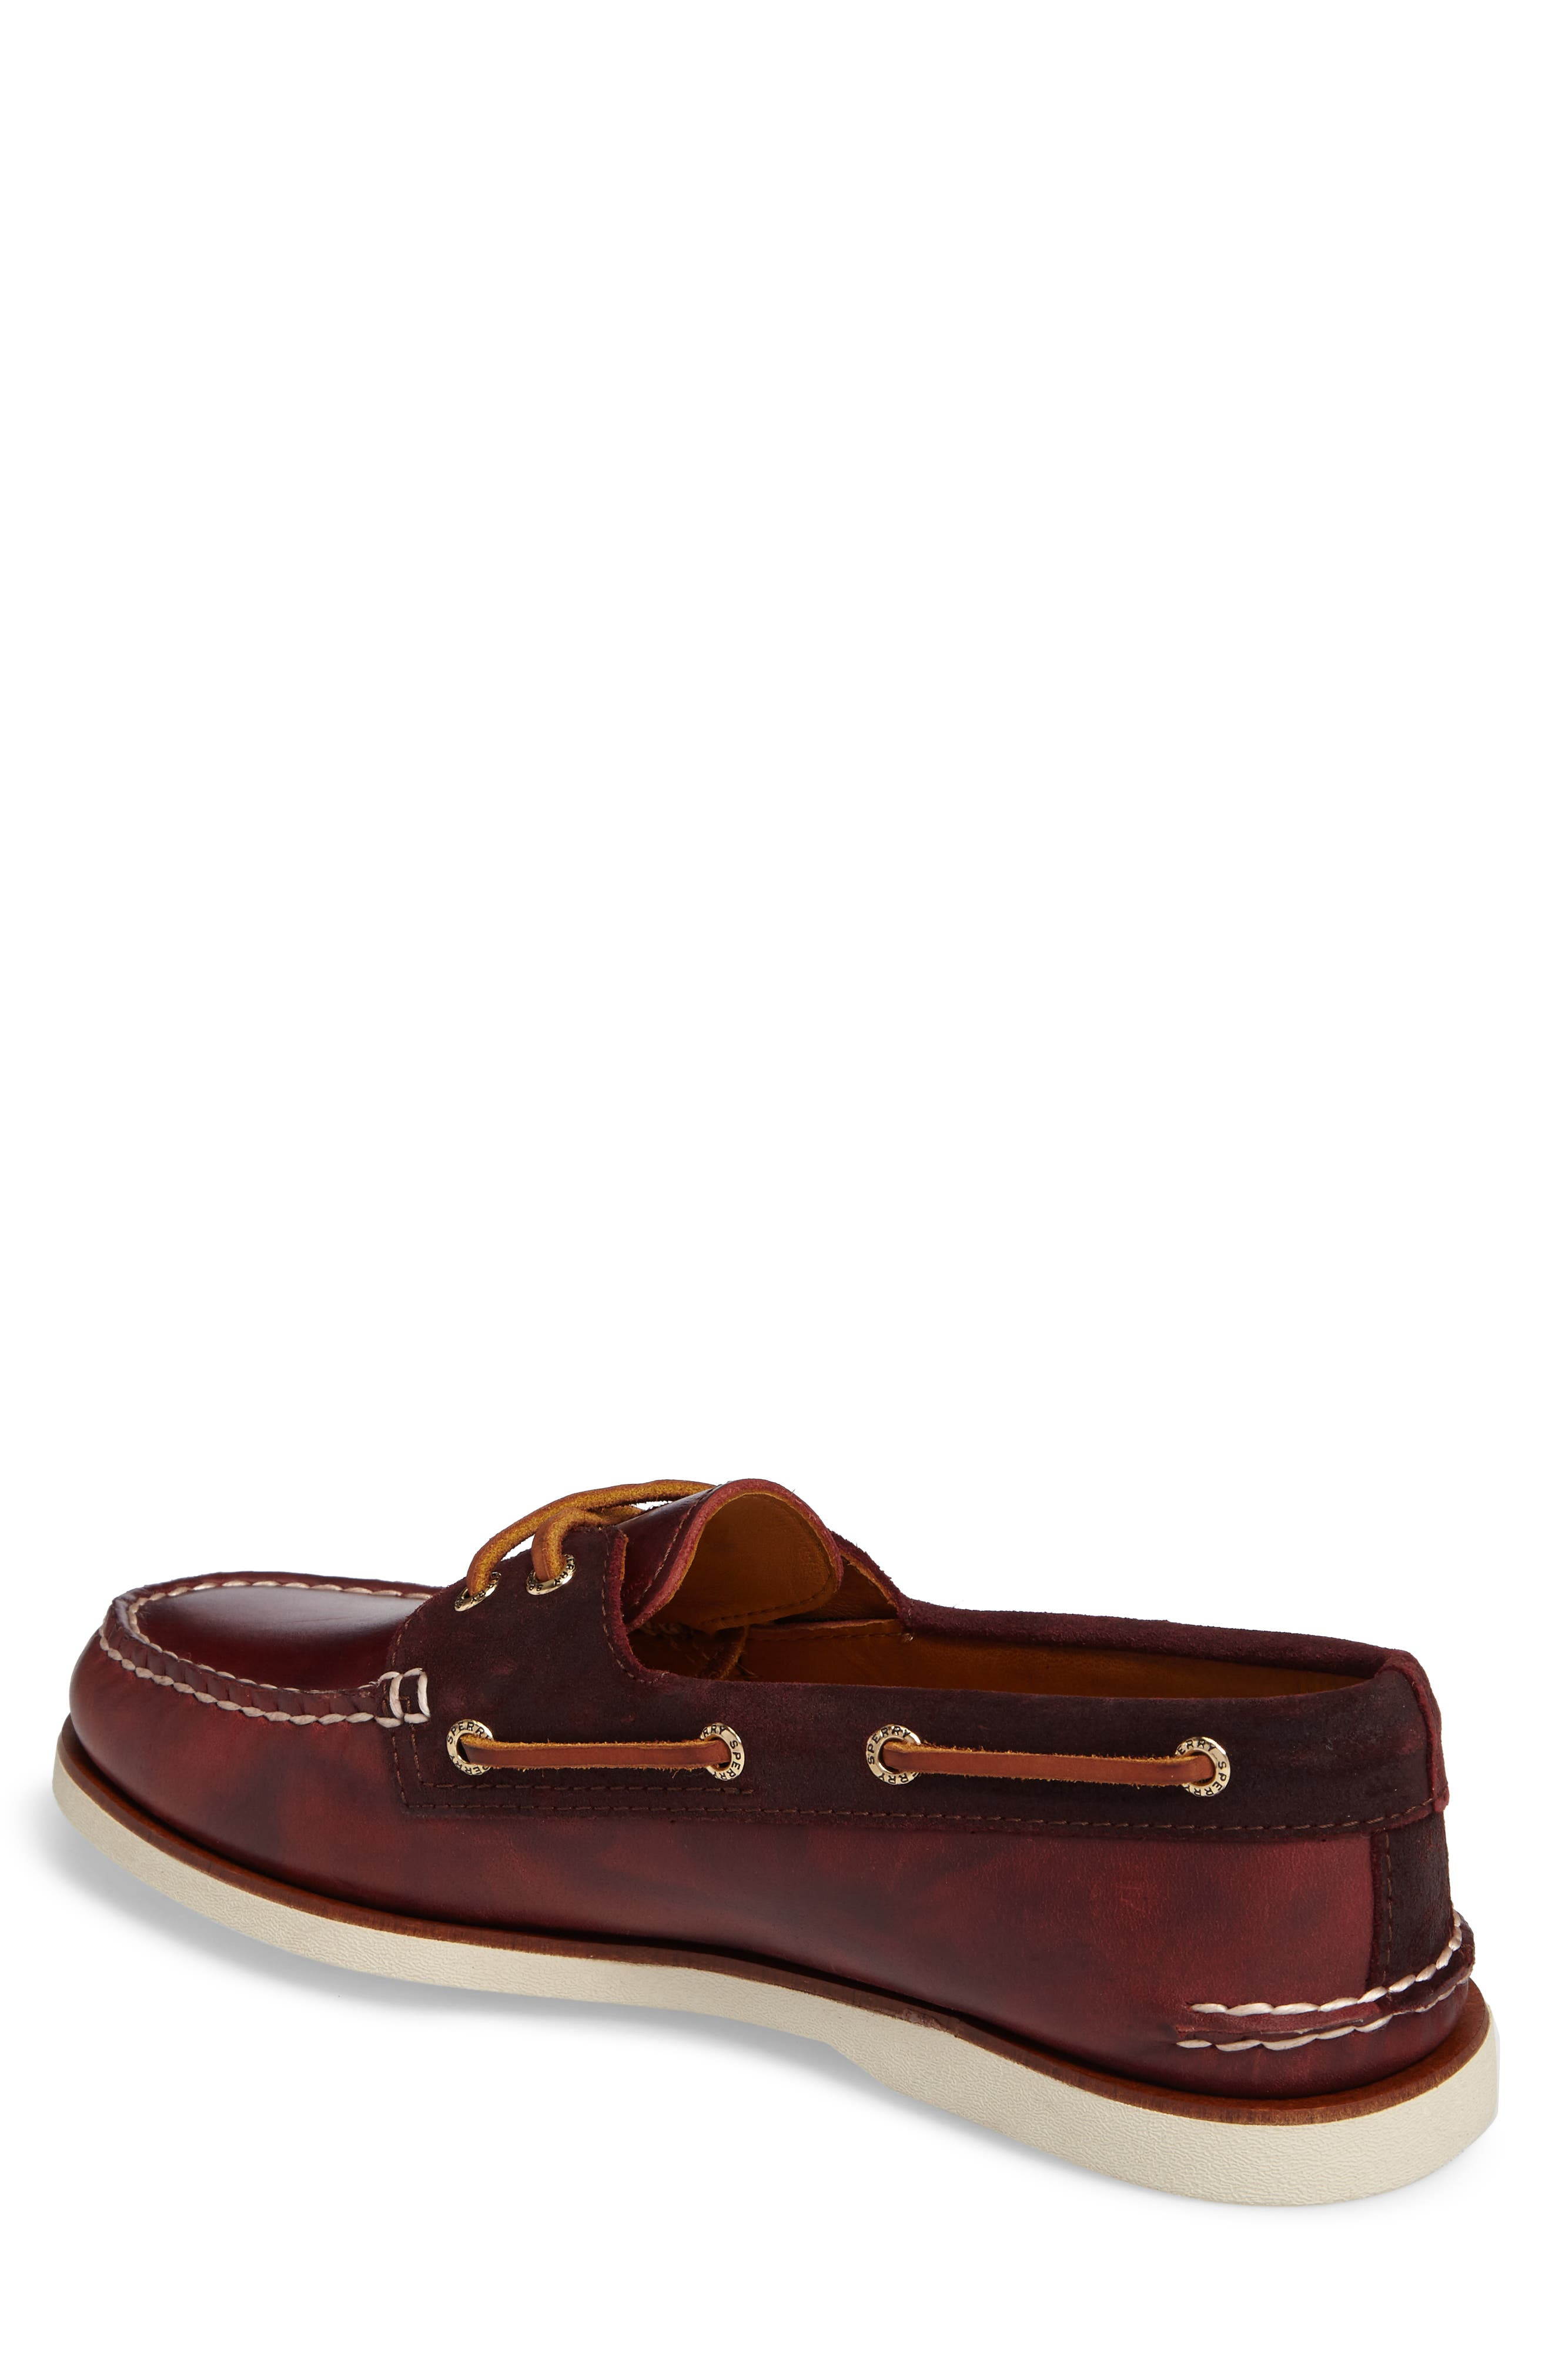 Gold Cyclone Boat Shoe,                             Alternate thumbnail 2, color,                             931